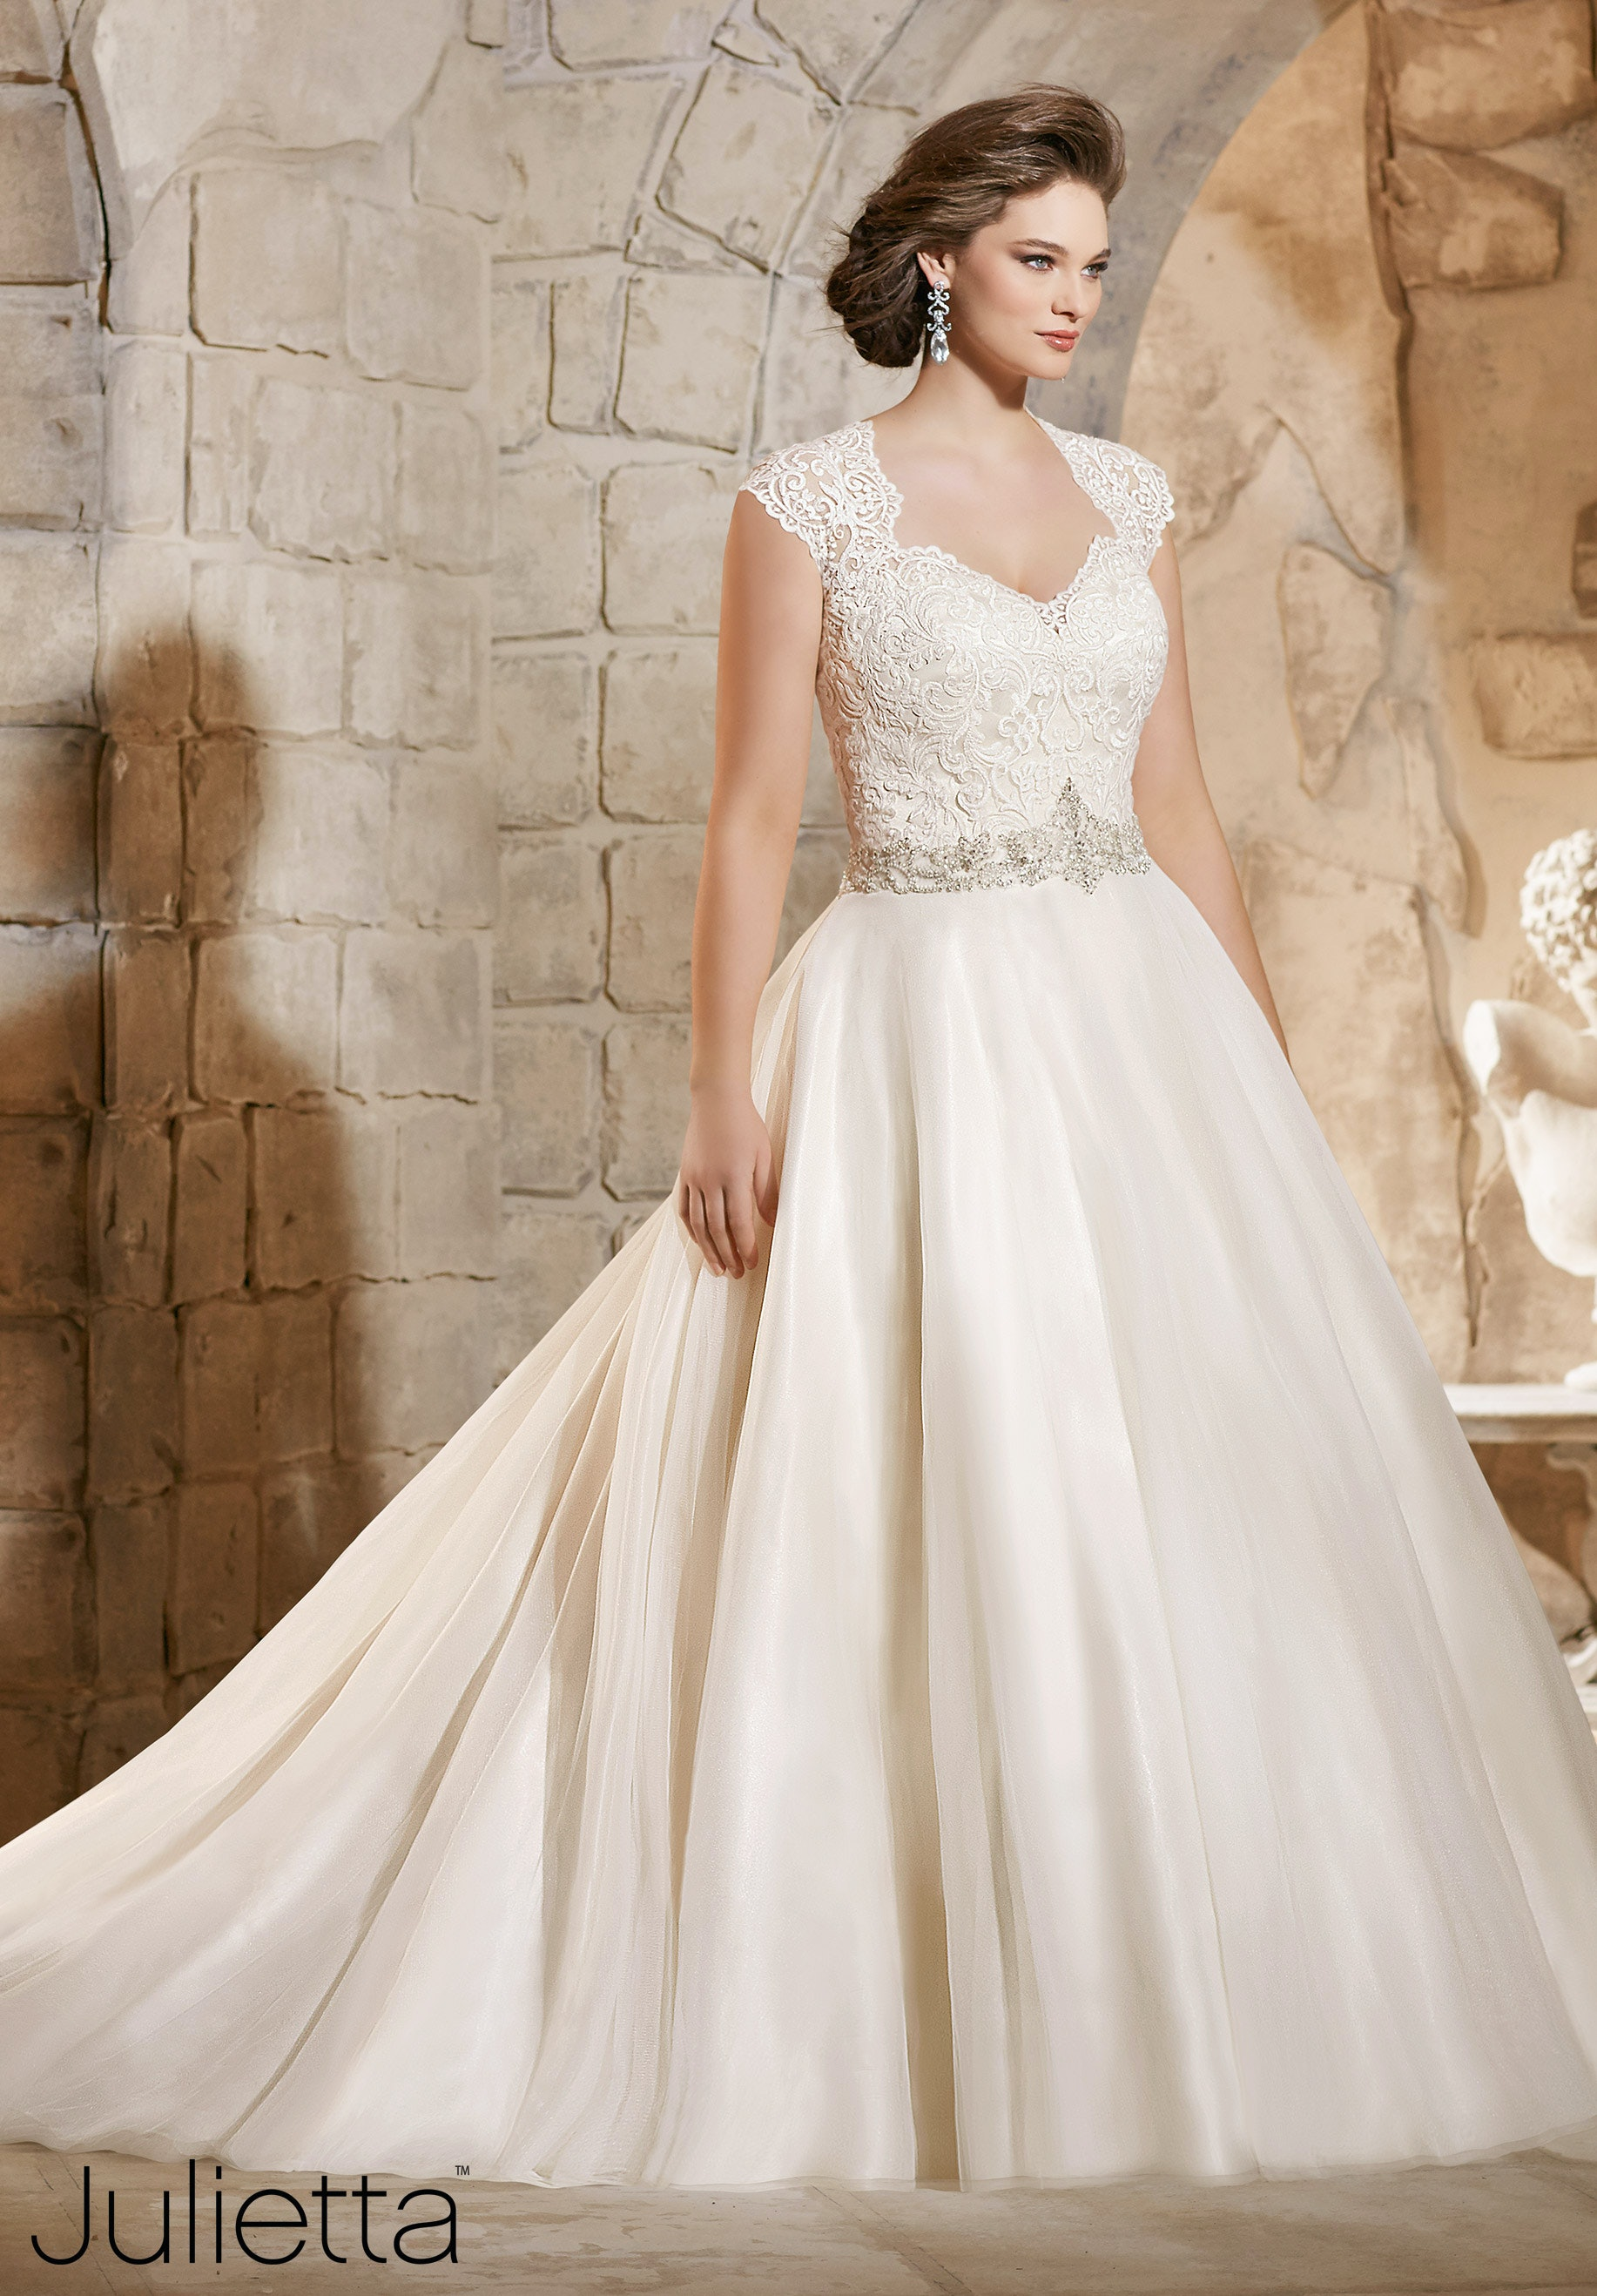 These 8 Plus Size Wedding Gown Designers Are Perfect For Body Positive Brides Photos,White Silk Ball Gown Wedding Dress